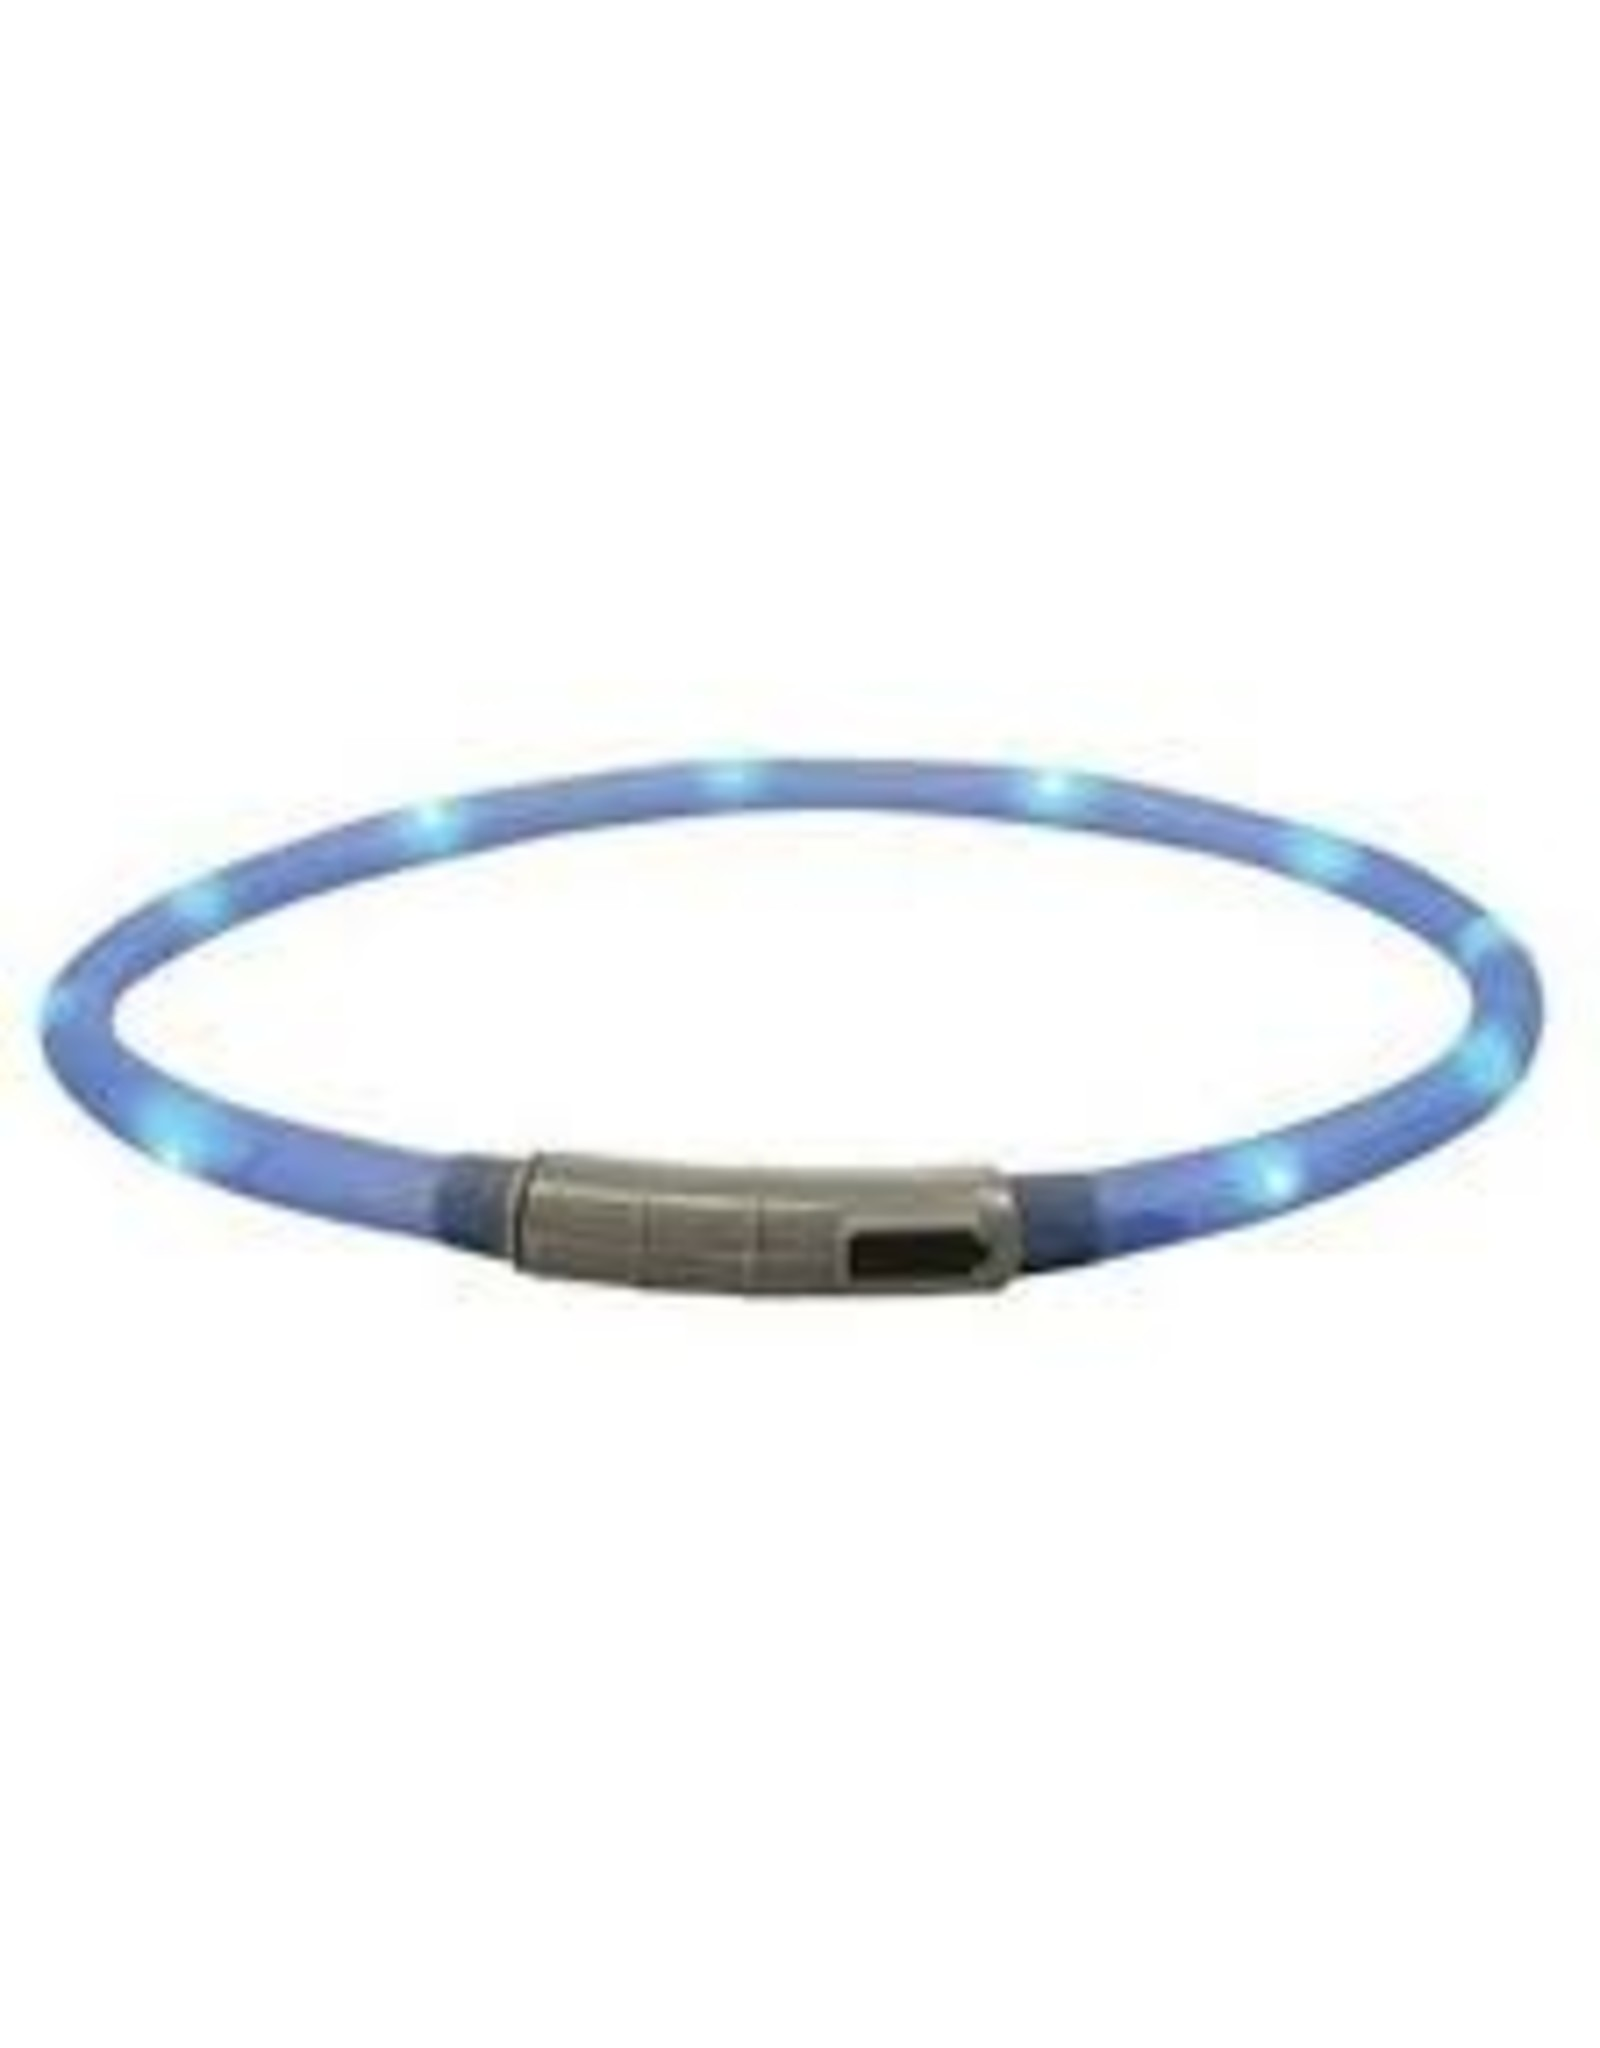 Bow & Arrow Rechargeable Light Up Collar